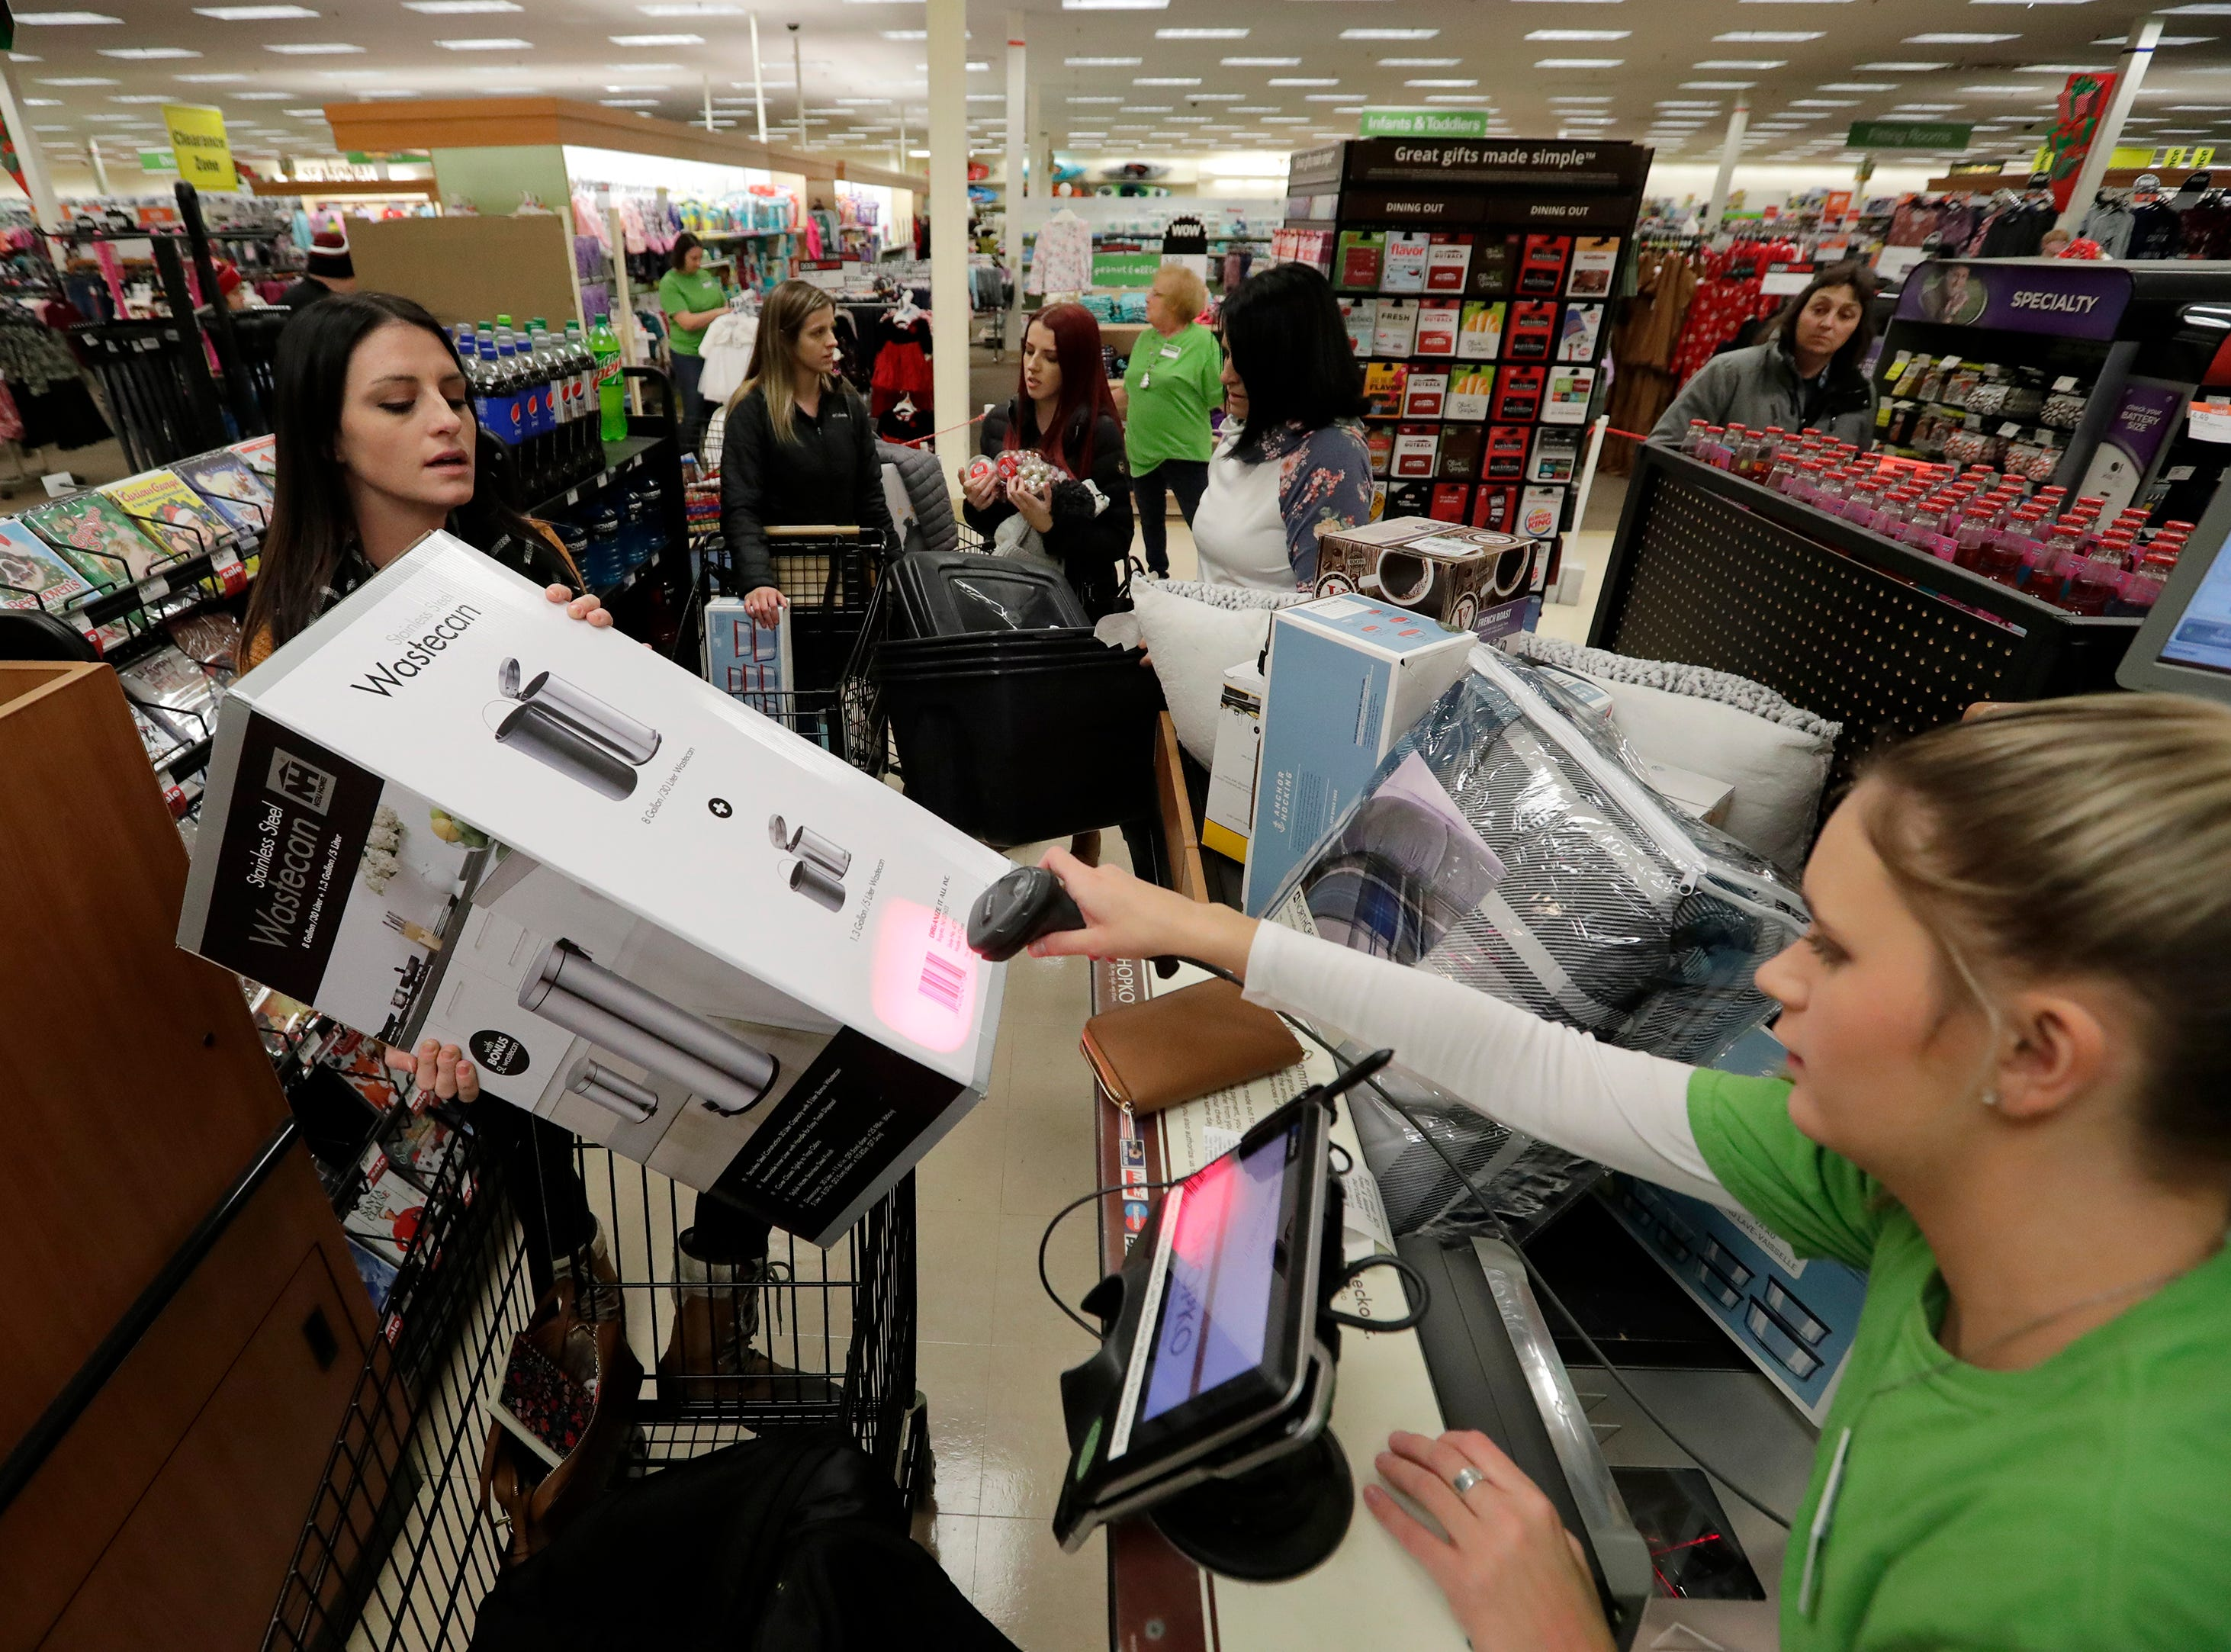 Kayla Williams, left, of Neenah has her Black Friday purchases rung up by Shopko employee Kiarra Springstroh Thursday, November 22, 2018, in Appleton, Wis. 